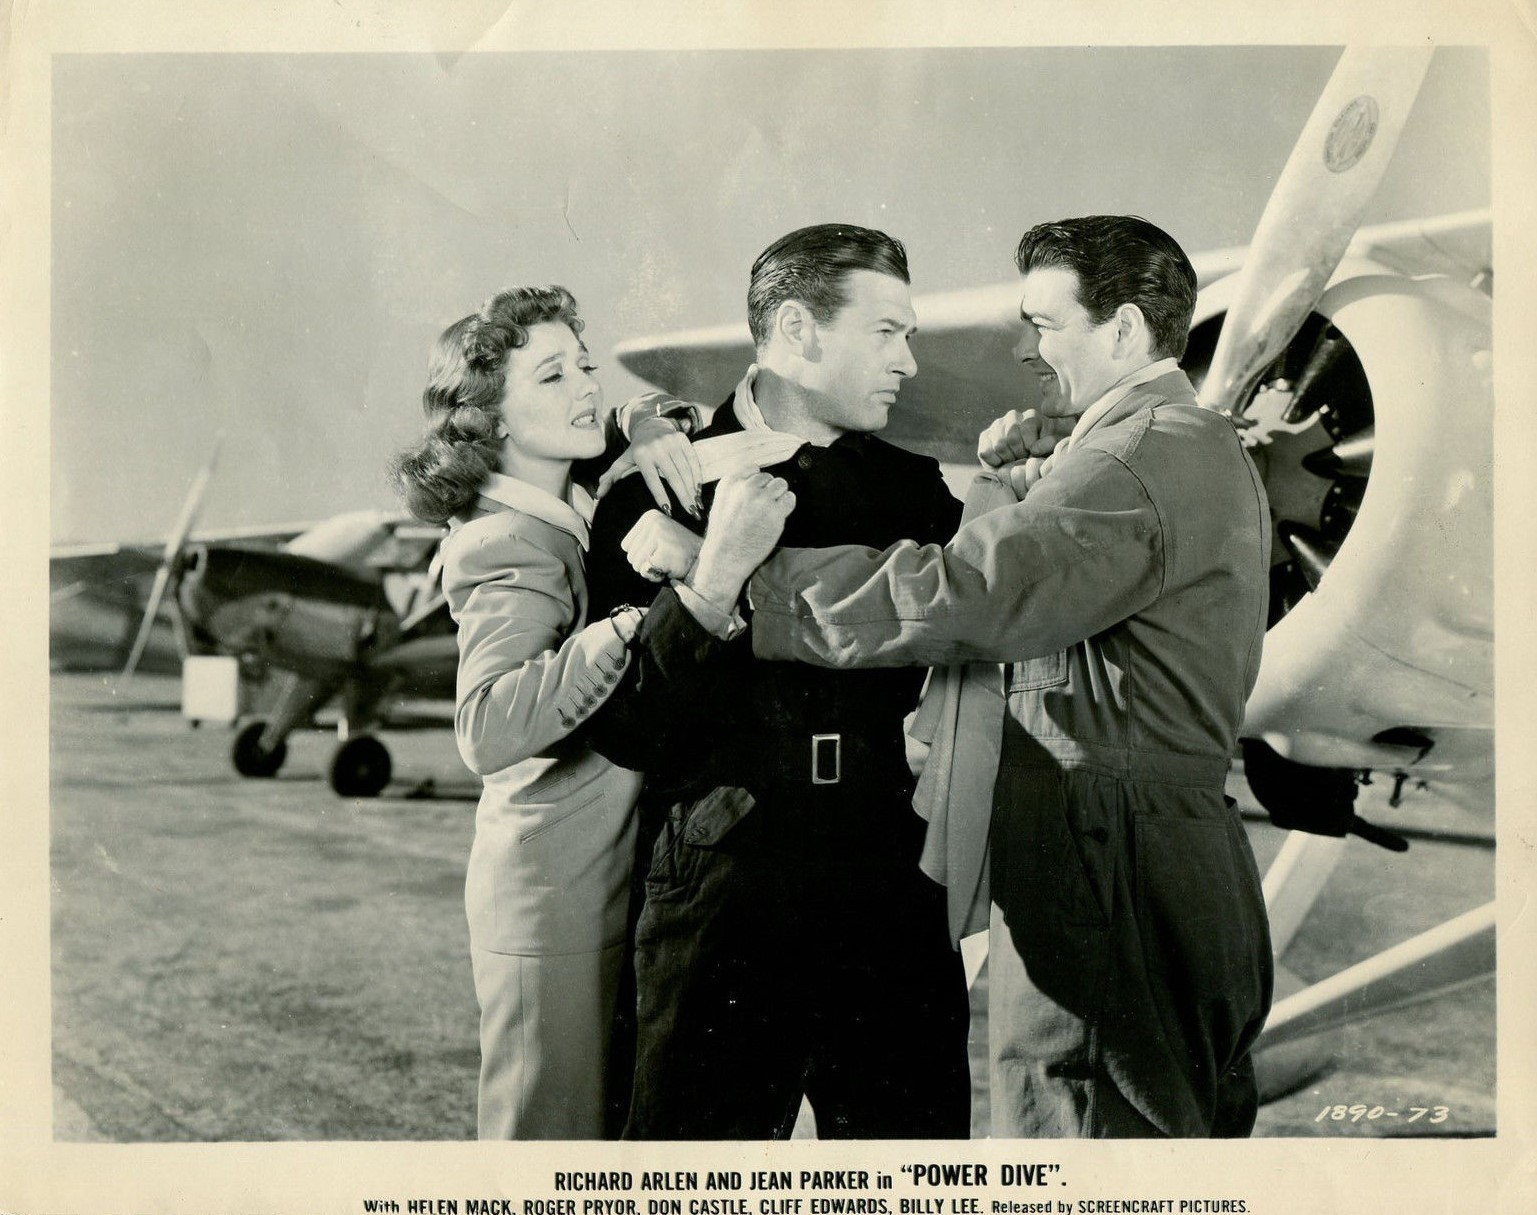 Richard Arlen, Don Castle, and Jean Parker in Power Dive (1941)